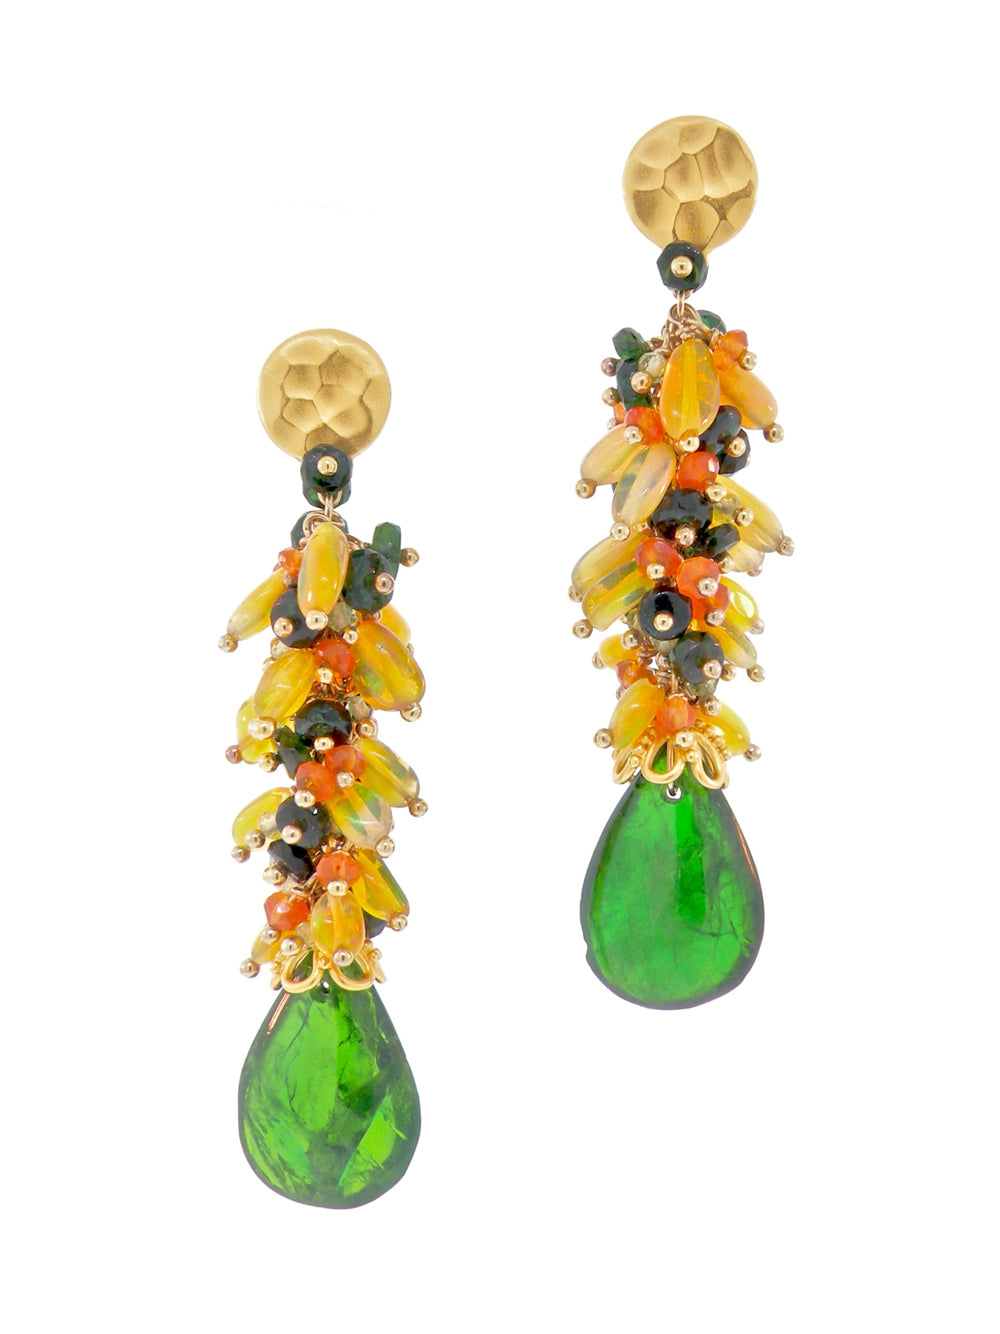 Sunset over Green Sand Beach Earrings - Dana Busch Designs